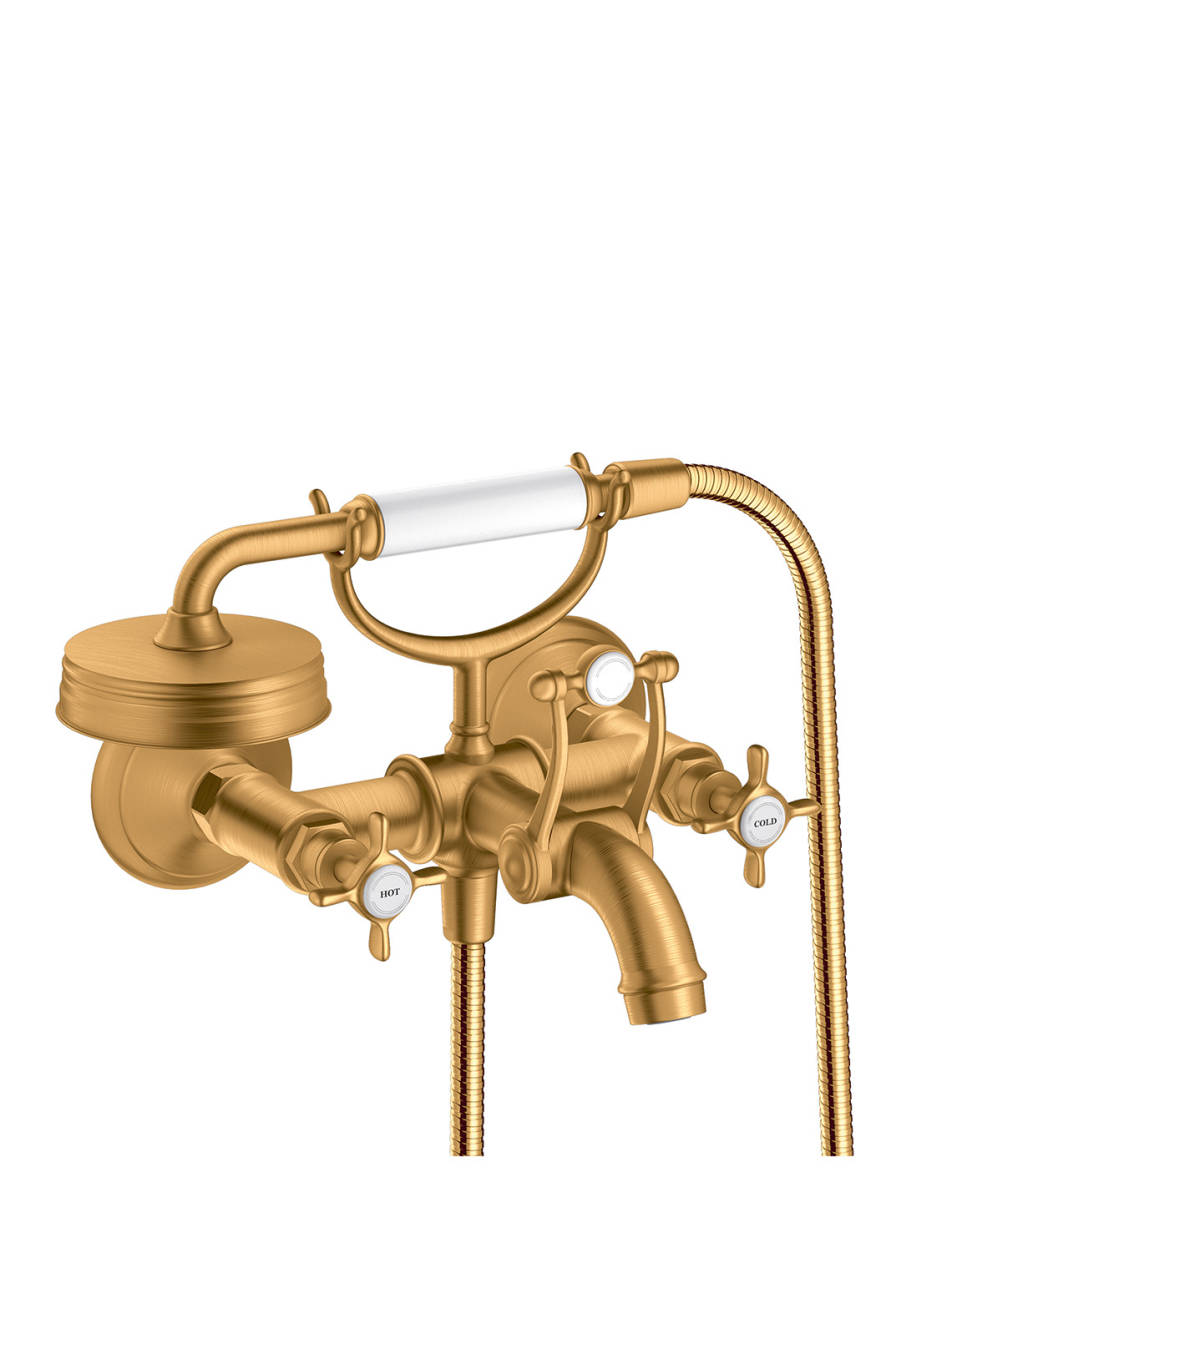 2-handle bath mixer for exposed installation with cross handles, Brushed Gold Optic, 16540250